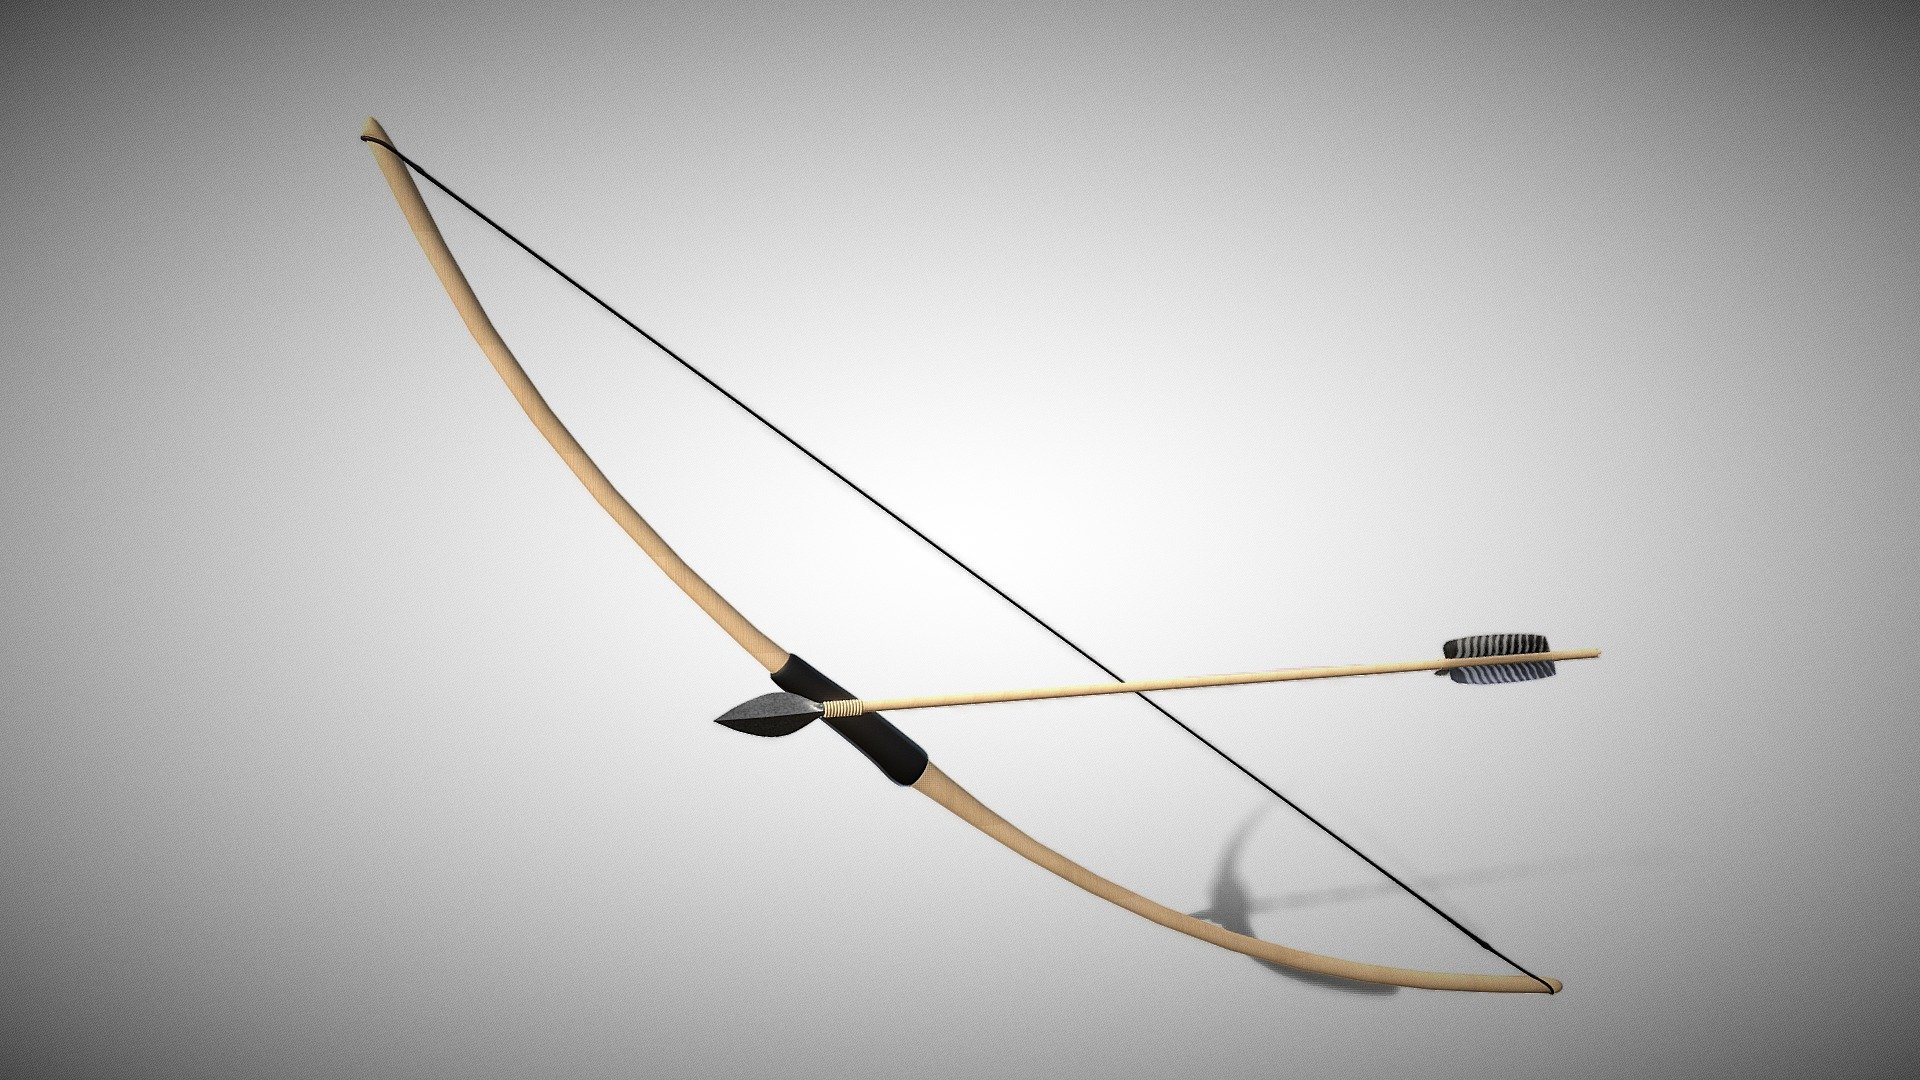 Bow And Arrow - Buy Royalty Free 3D model by Pieter Ferreira